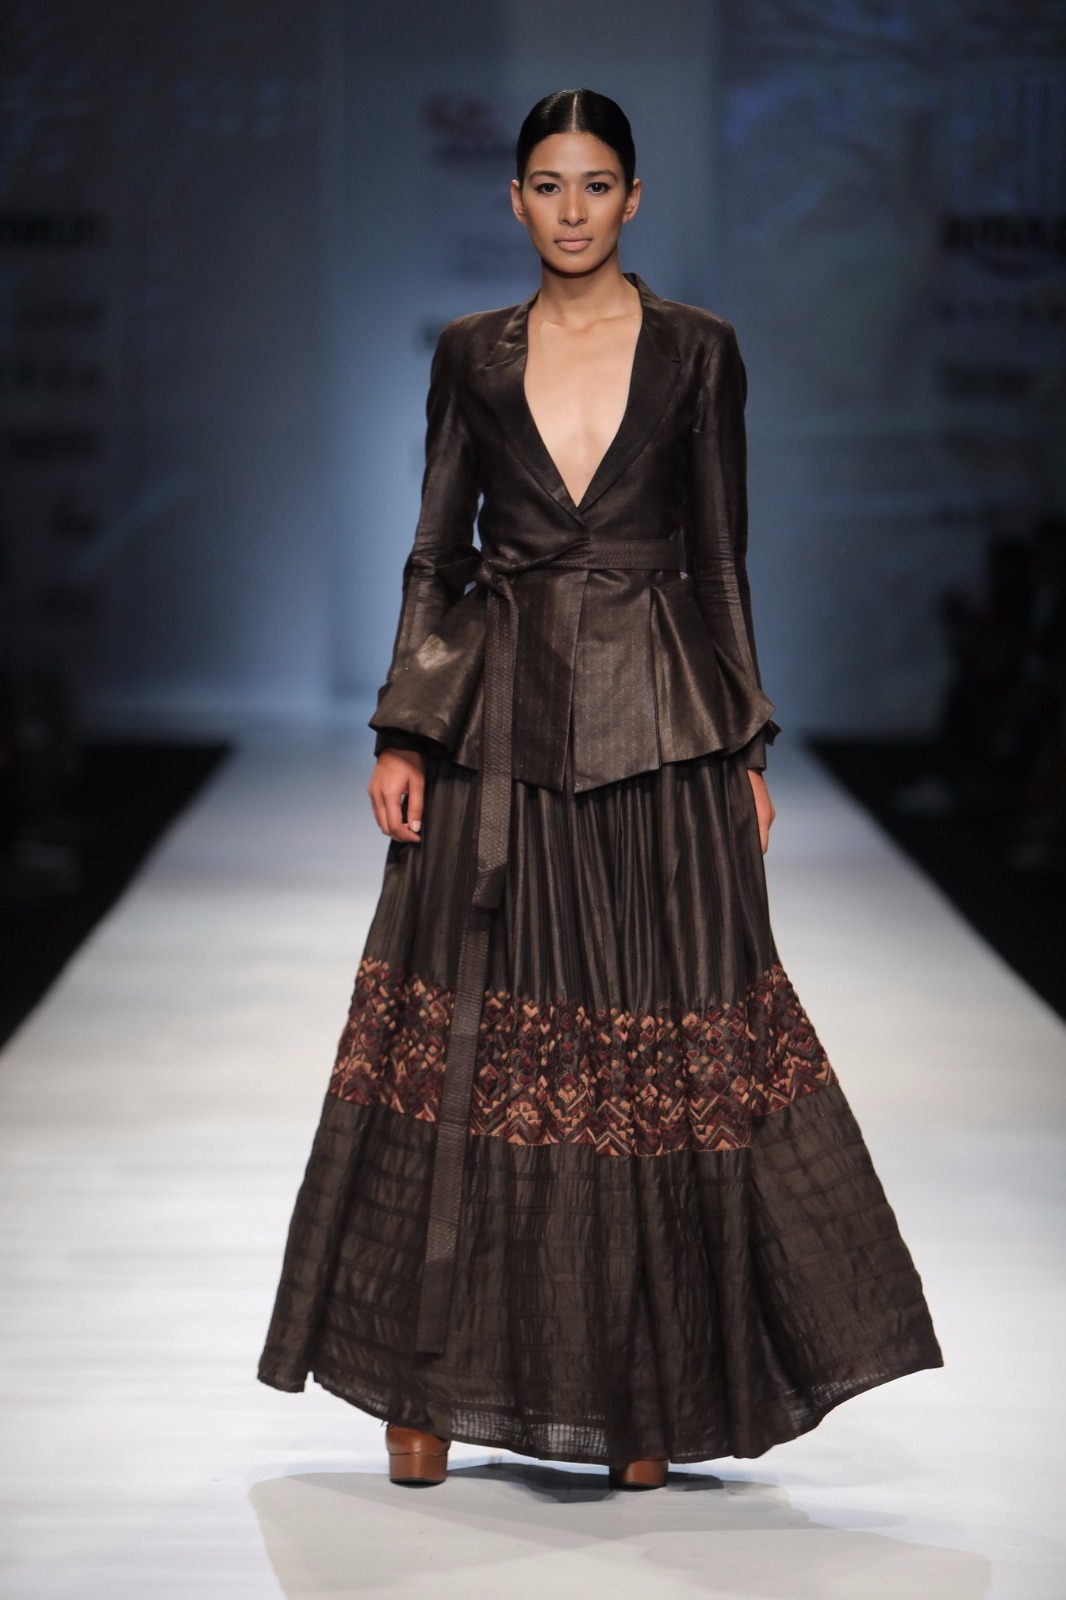 http://www.talksassy.com/wp-content/uploads/2017/03/Amazon-India-Fashion-Week-Autumn-Winter-2017-21.jpg